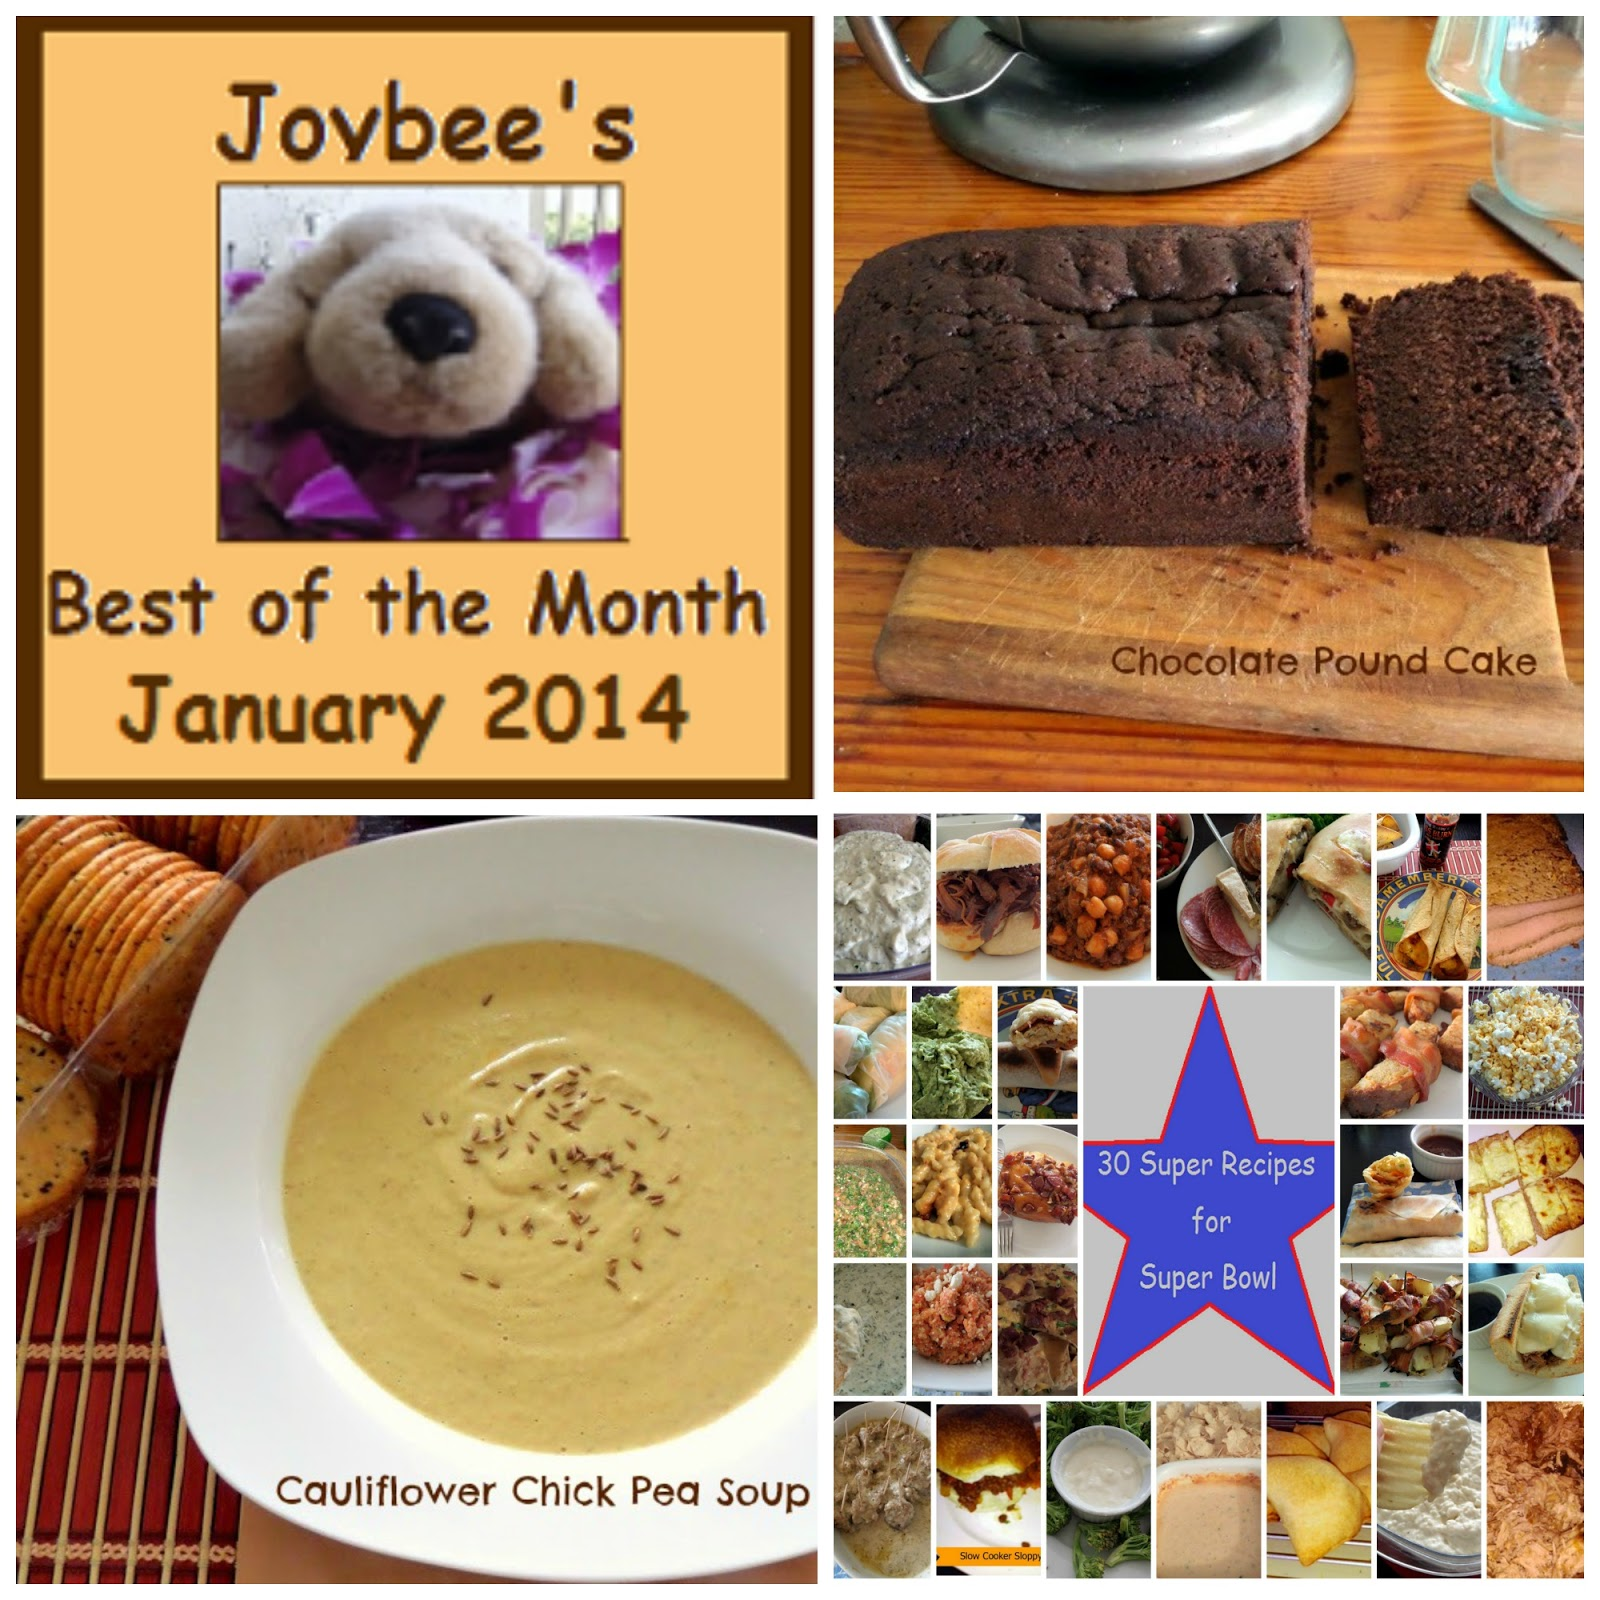 Best of the Month January 2014:  Chocolate Pound Cake, 30 Recipes Super for Super Bowl, and Cauliflower & Chick Pea Soup